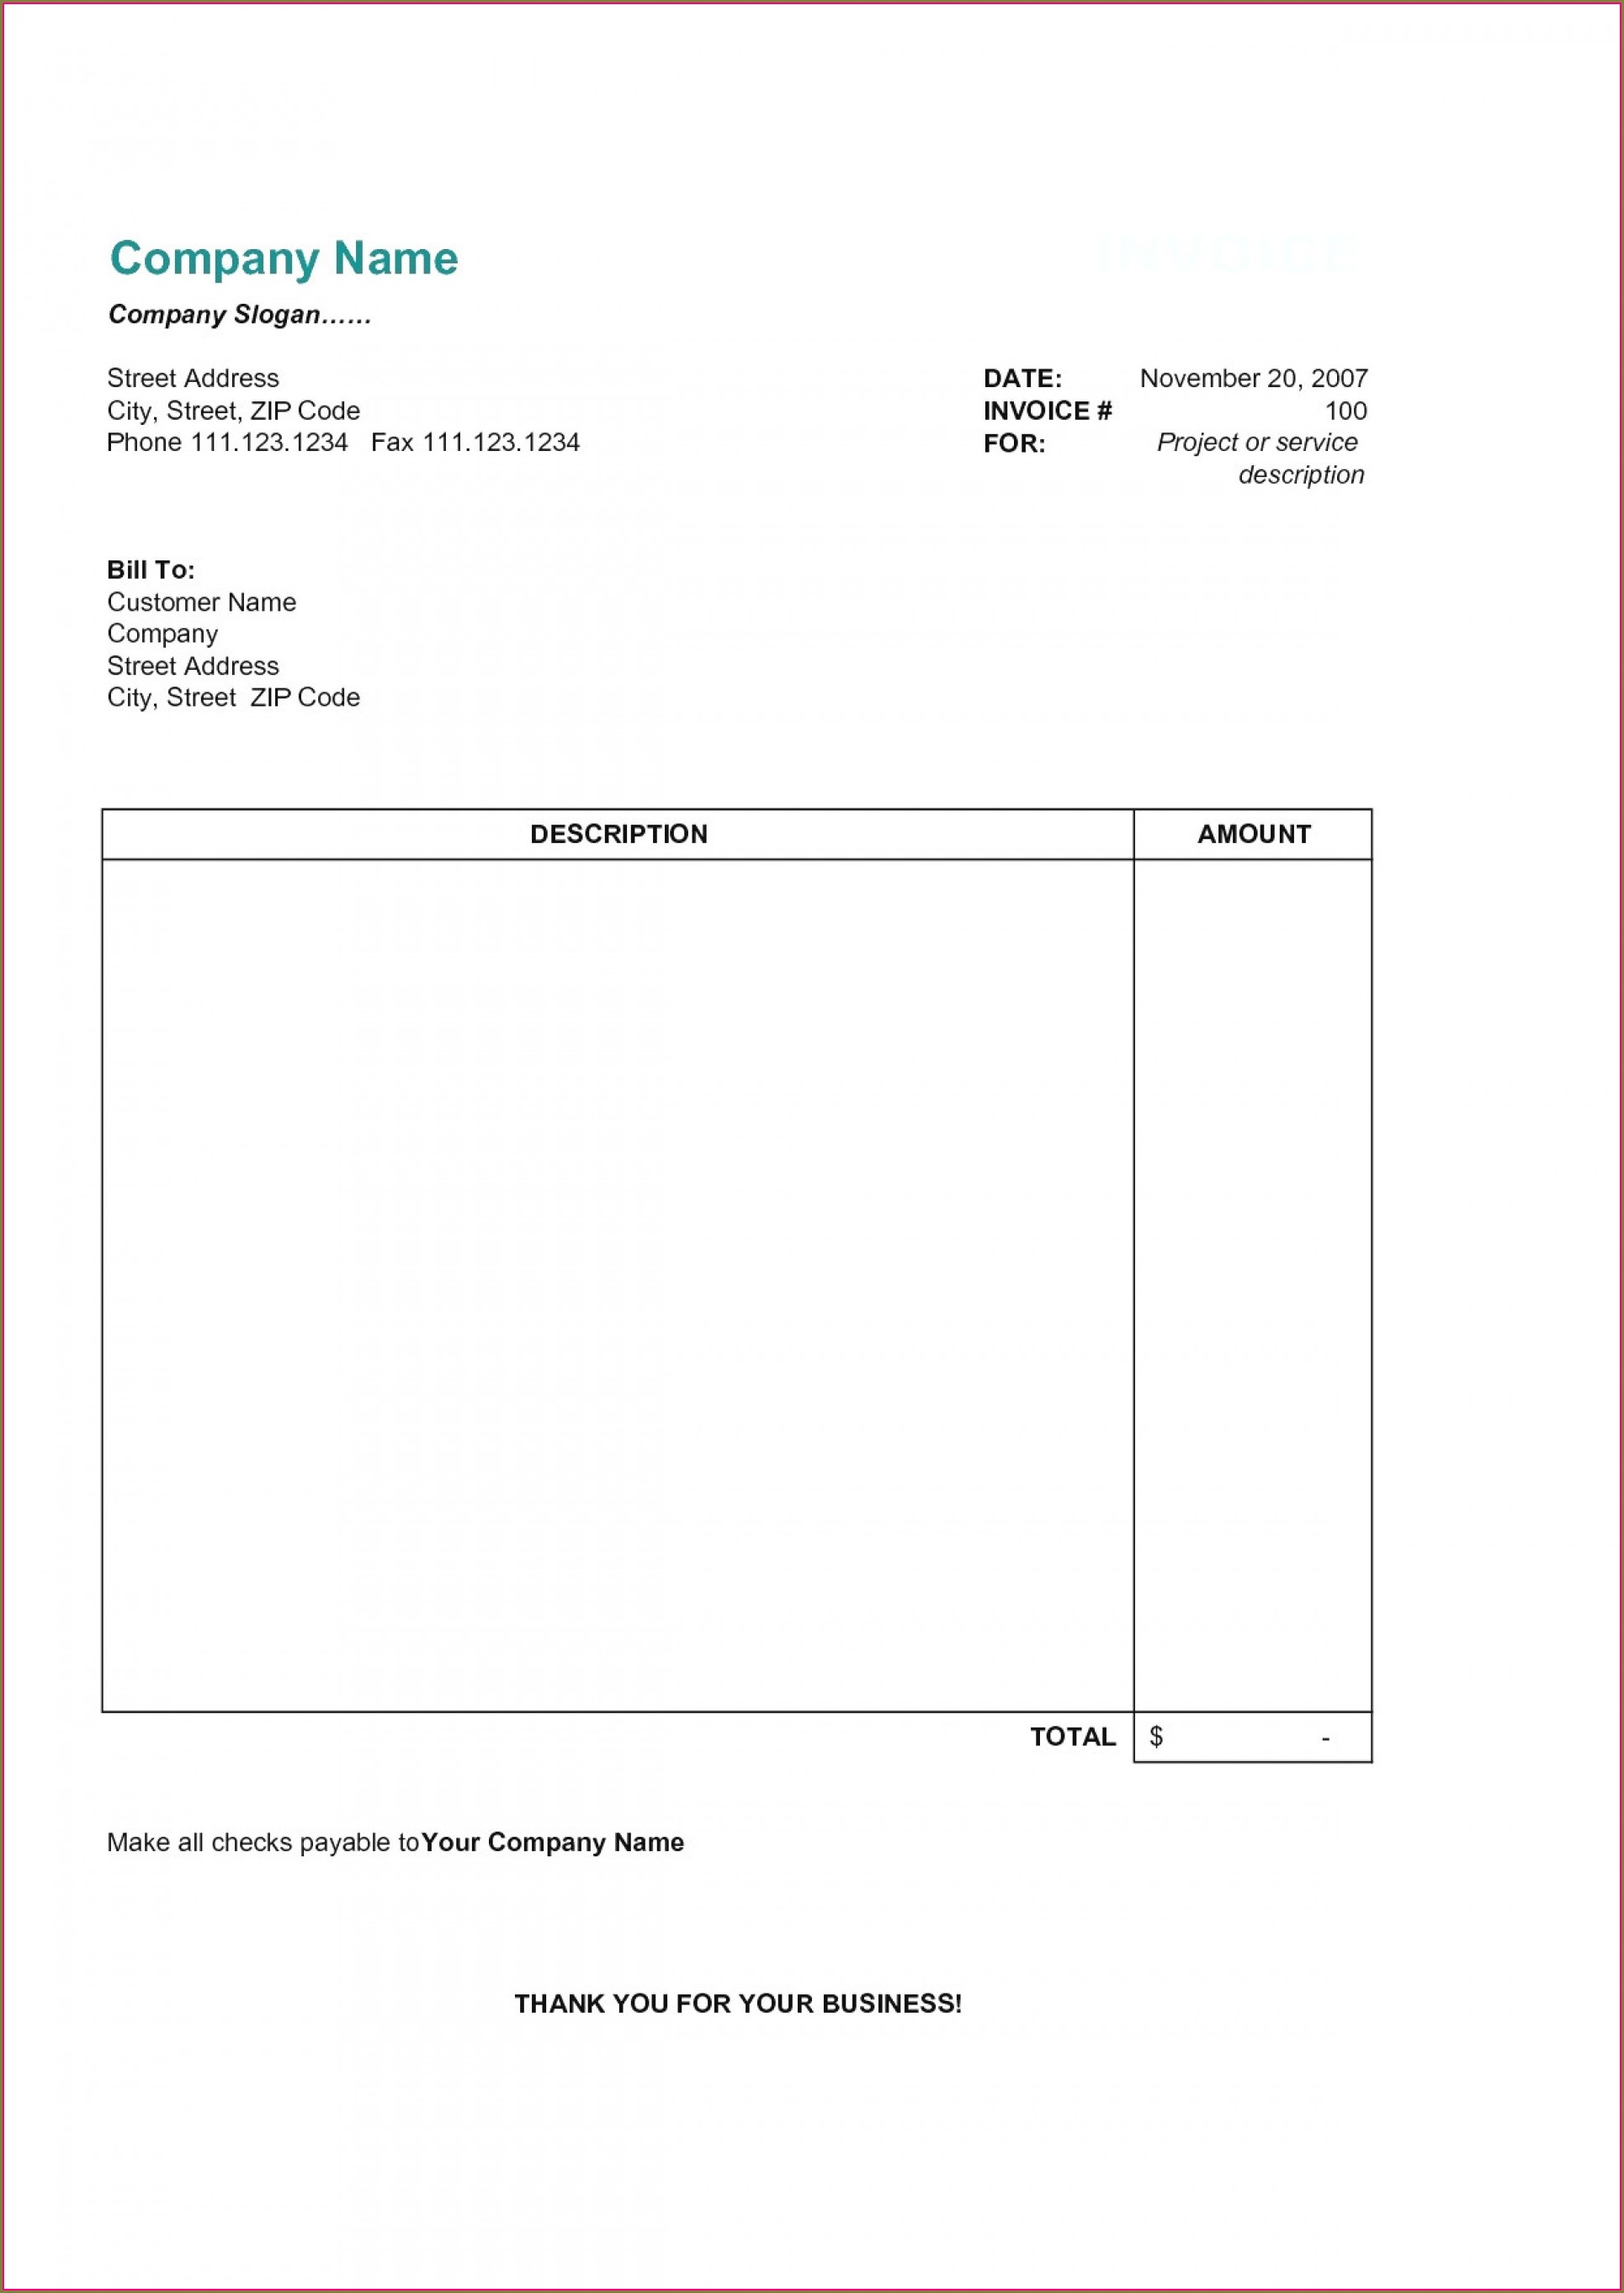 Sample Invoices Templates